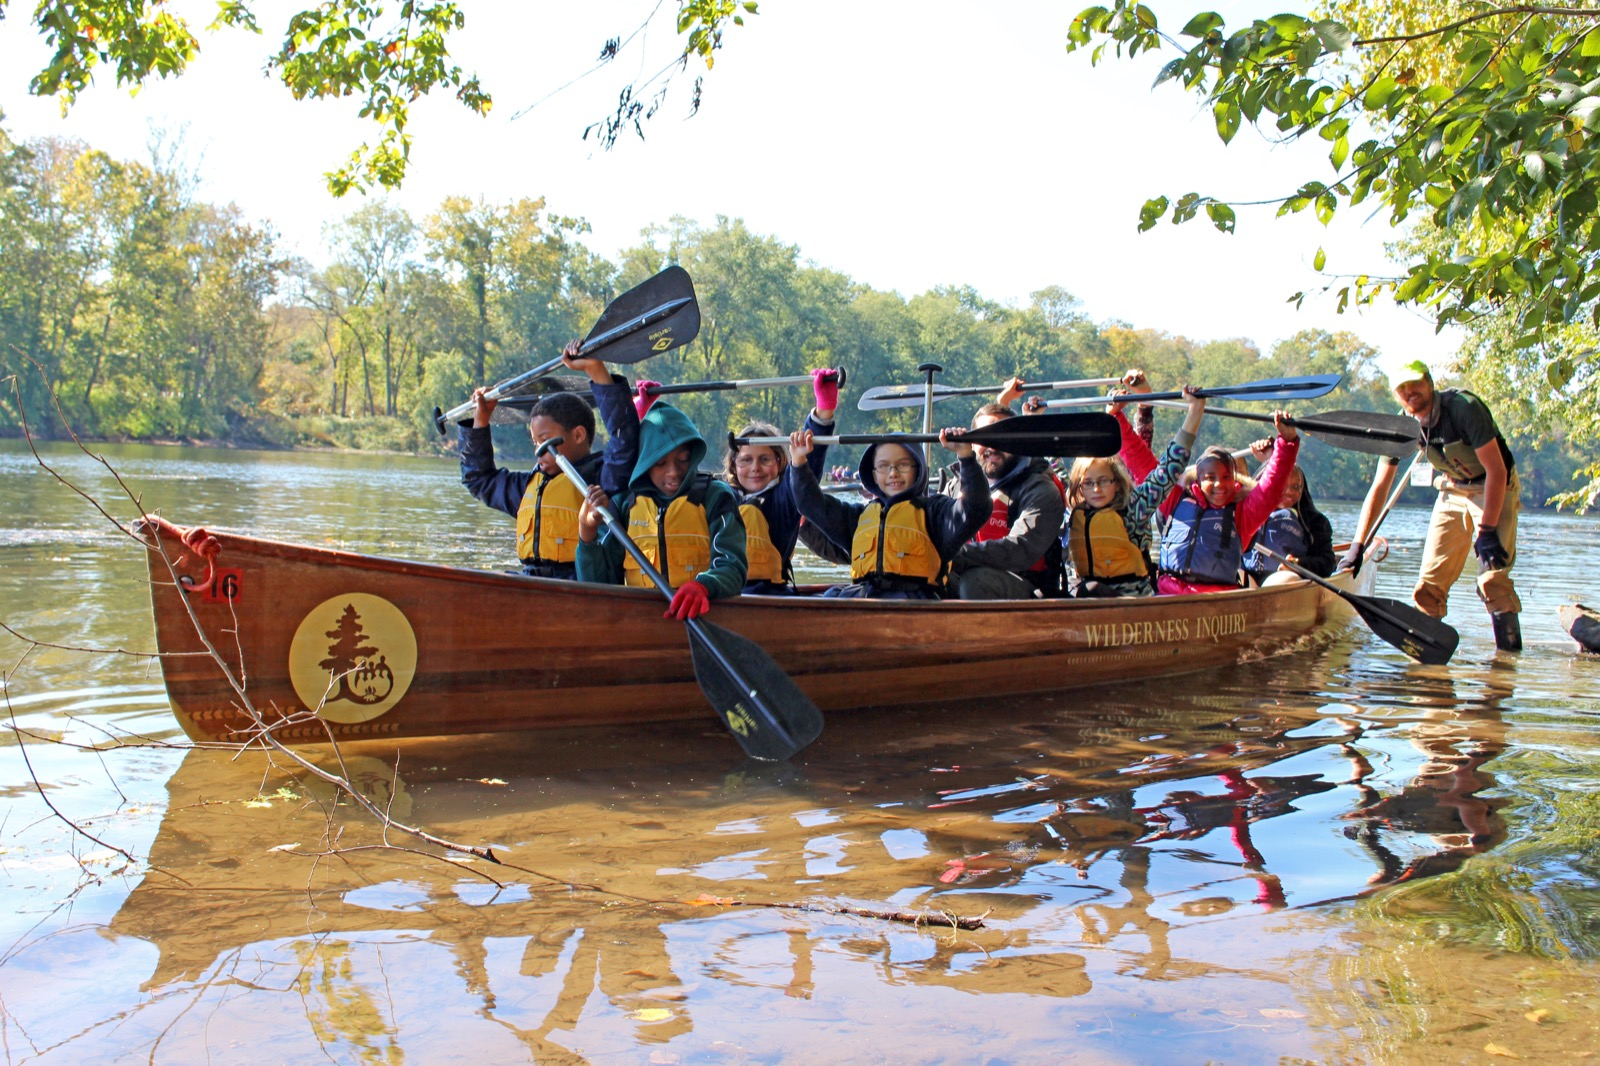 A Group of youth get ready to launch off the shore in the voyageur canoe